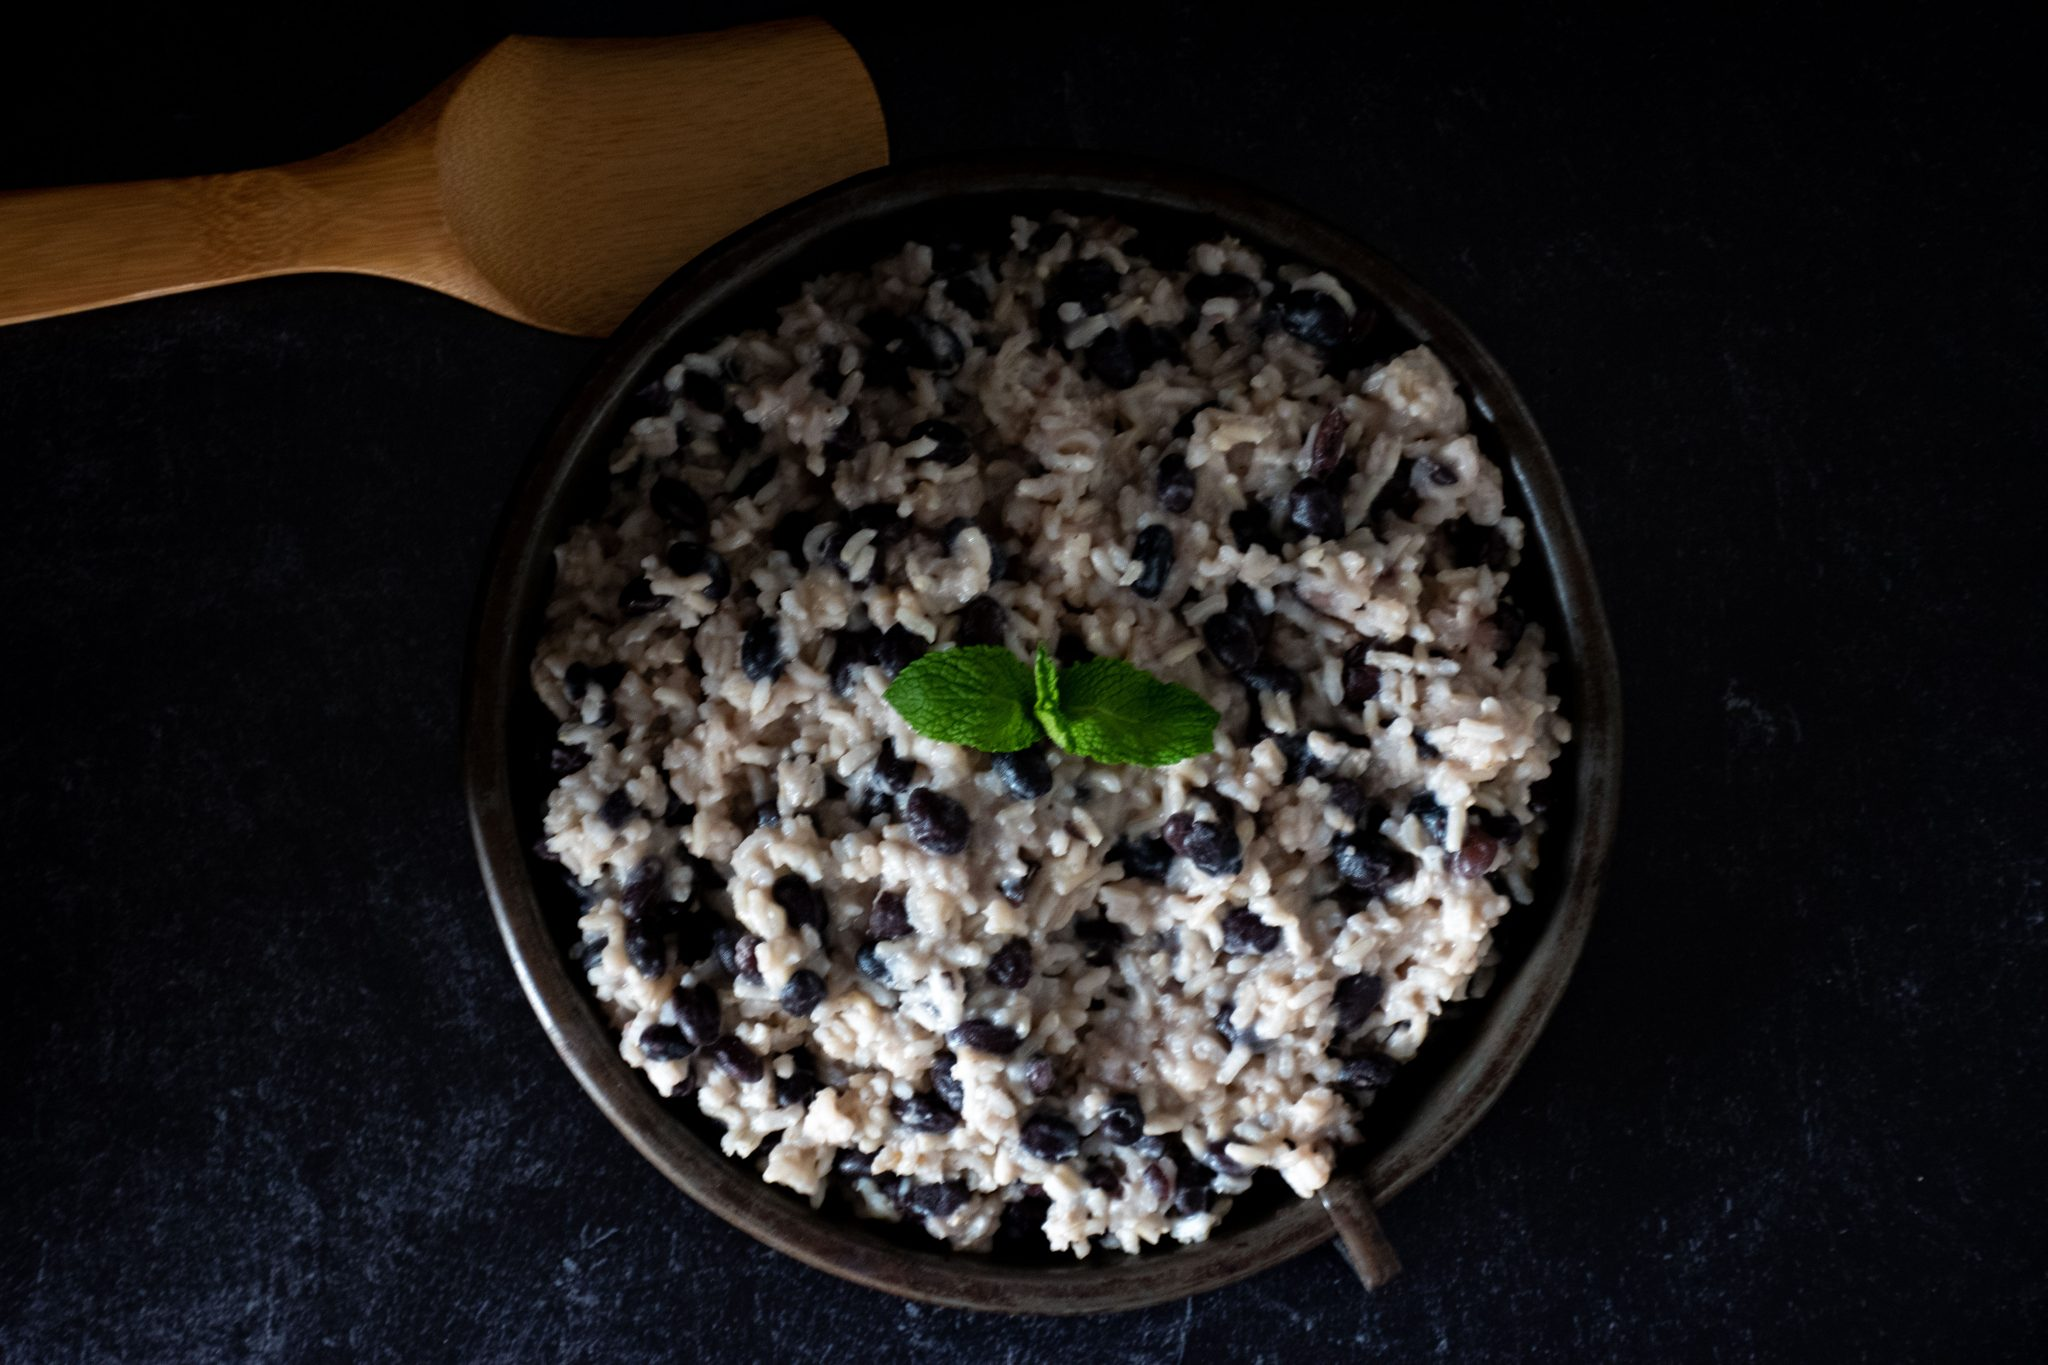 Banana coconut rice and black beans on a round metal plate, garnished with mint, on a dark background with dramatic shadows.